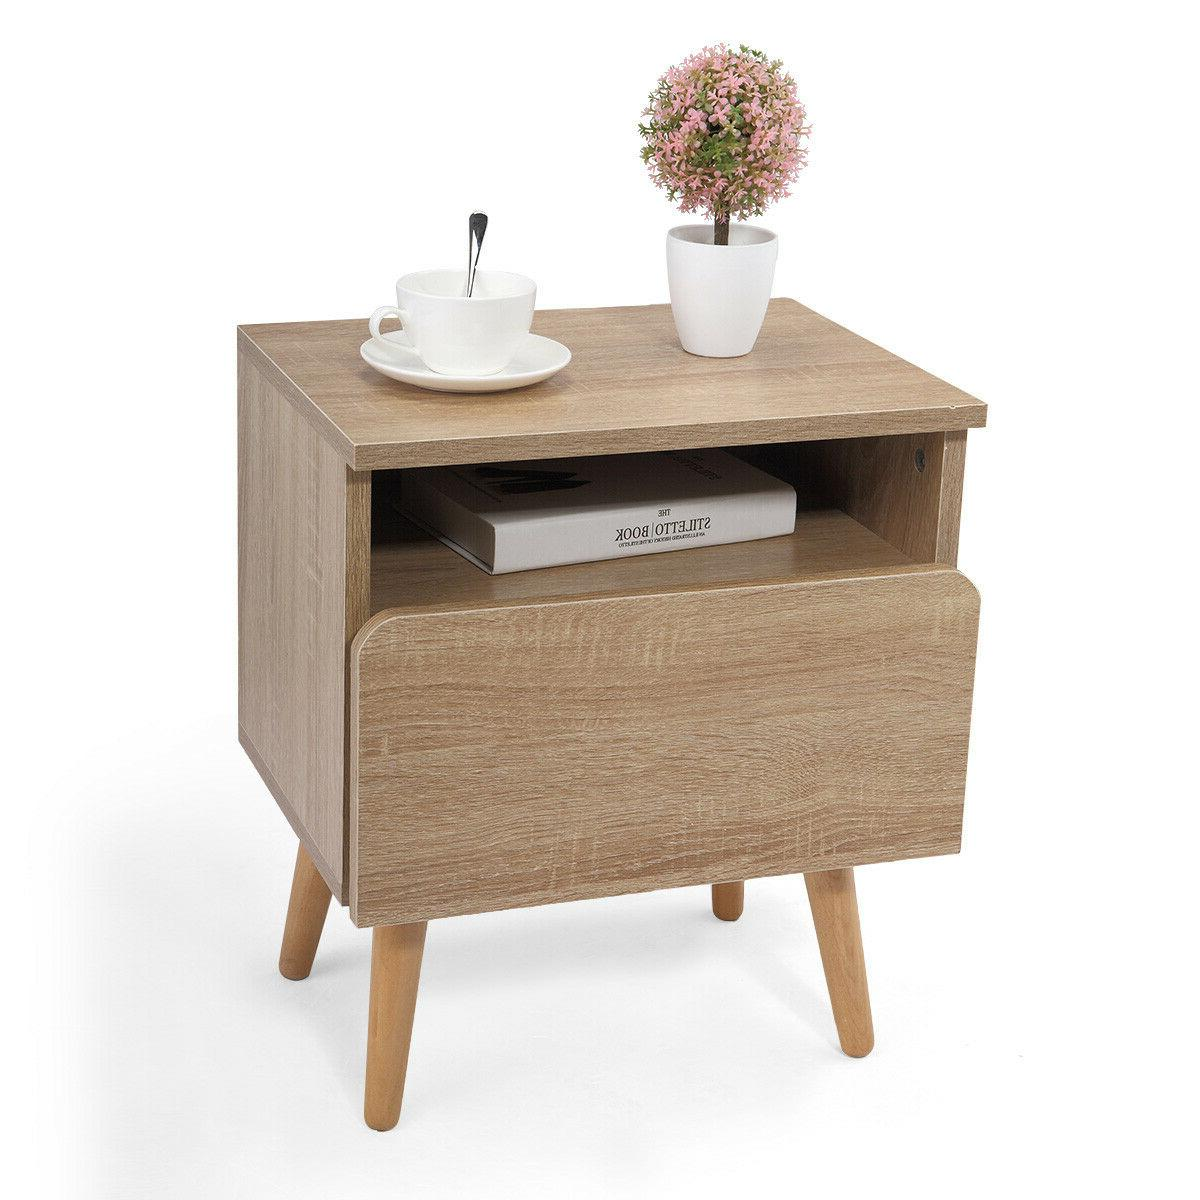 Modern Nightstand Bedside End Table Storage Cabinet w/ Drawe